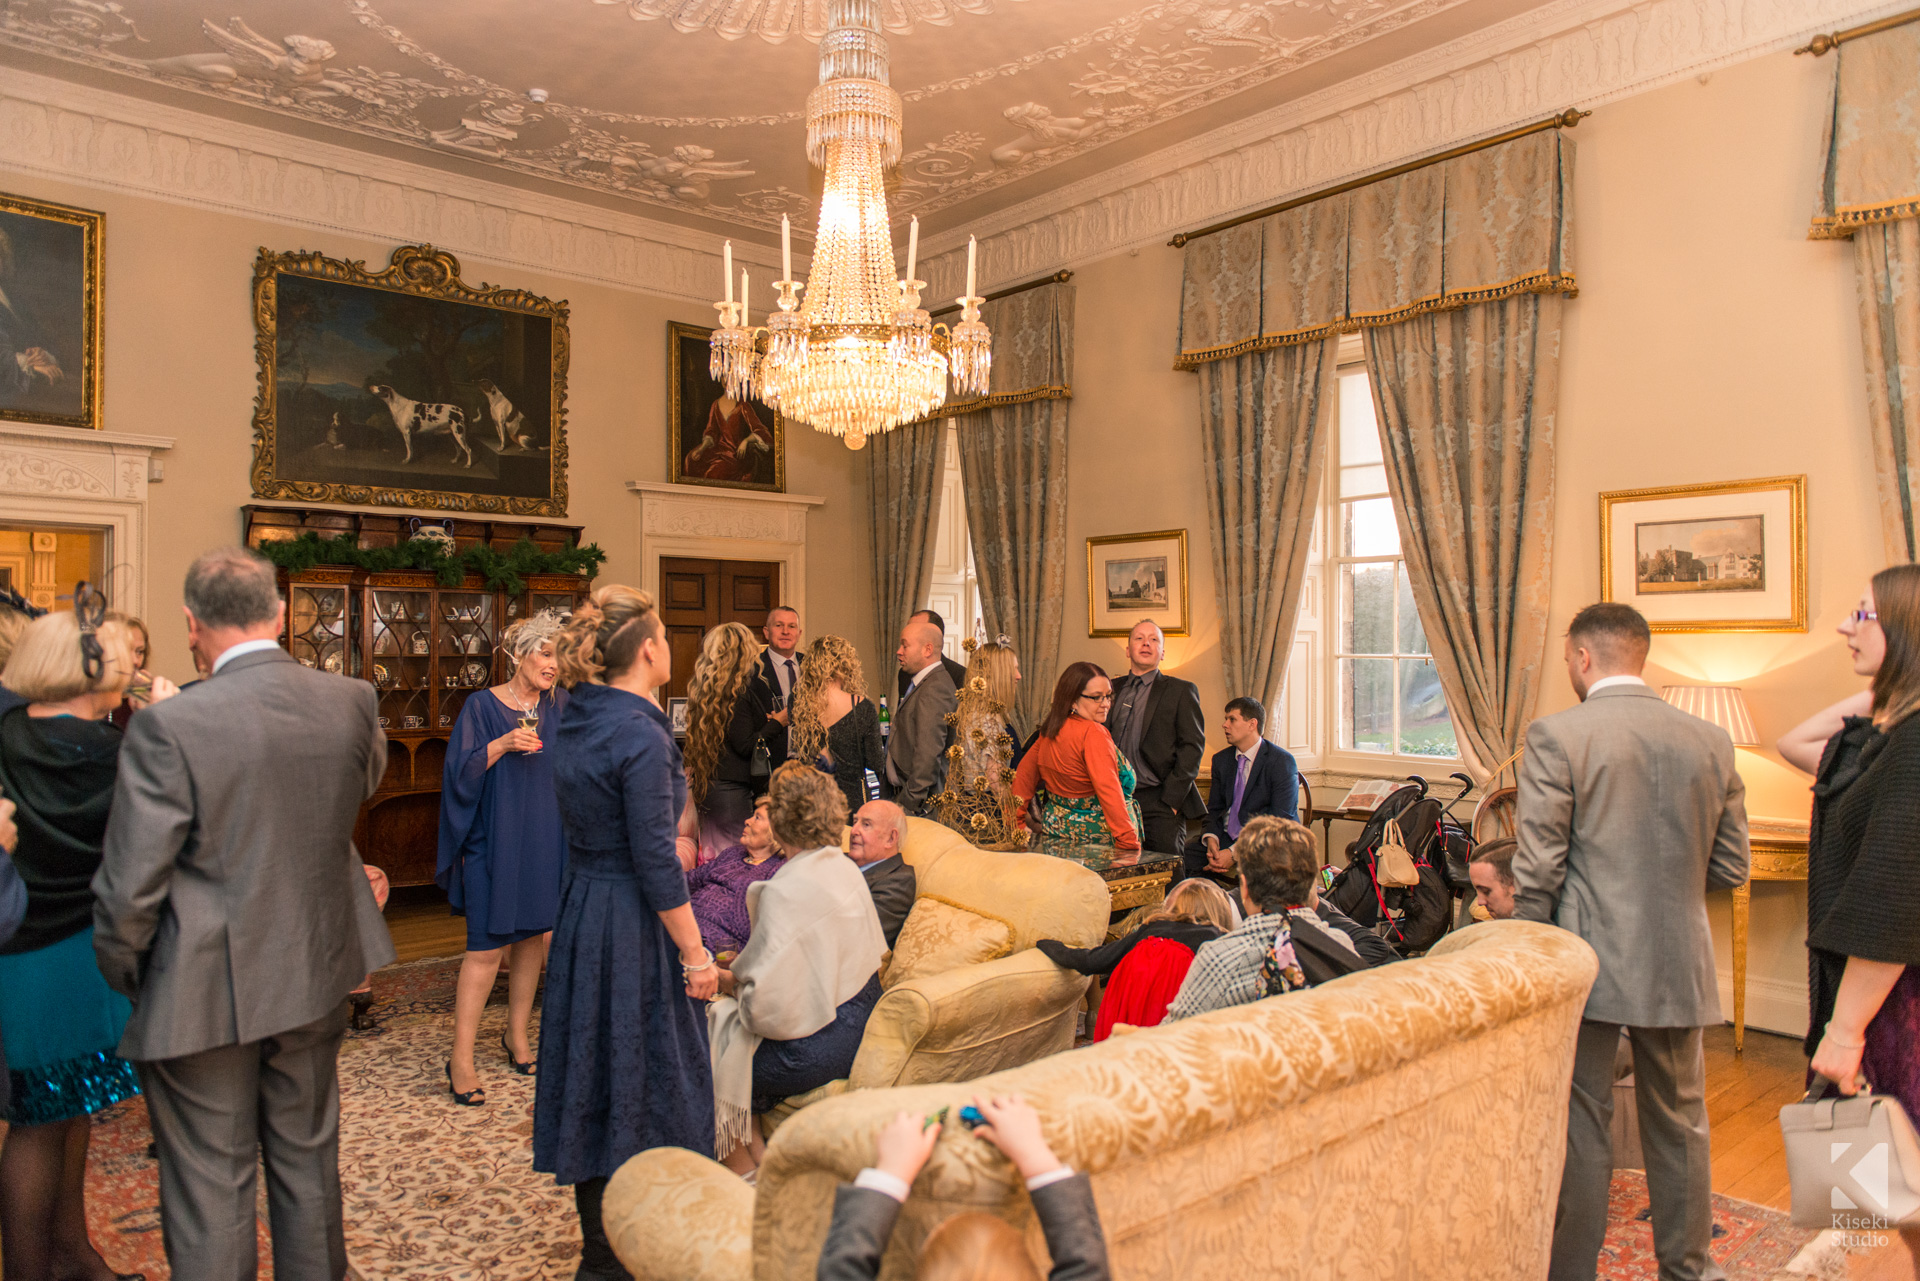 Ripley Castle Wedding - Guests enjoying a drink in the living area